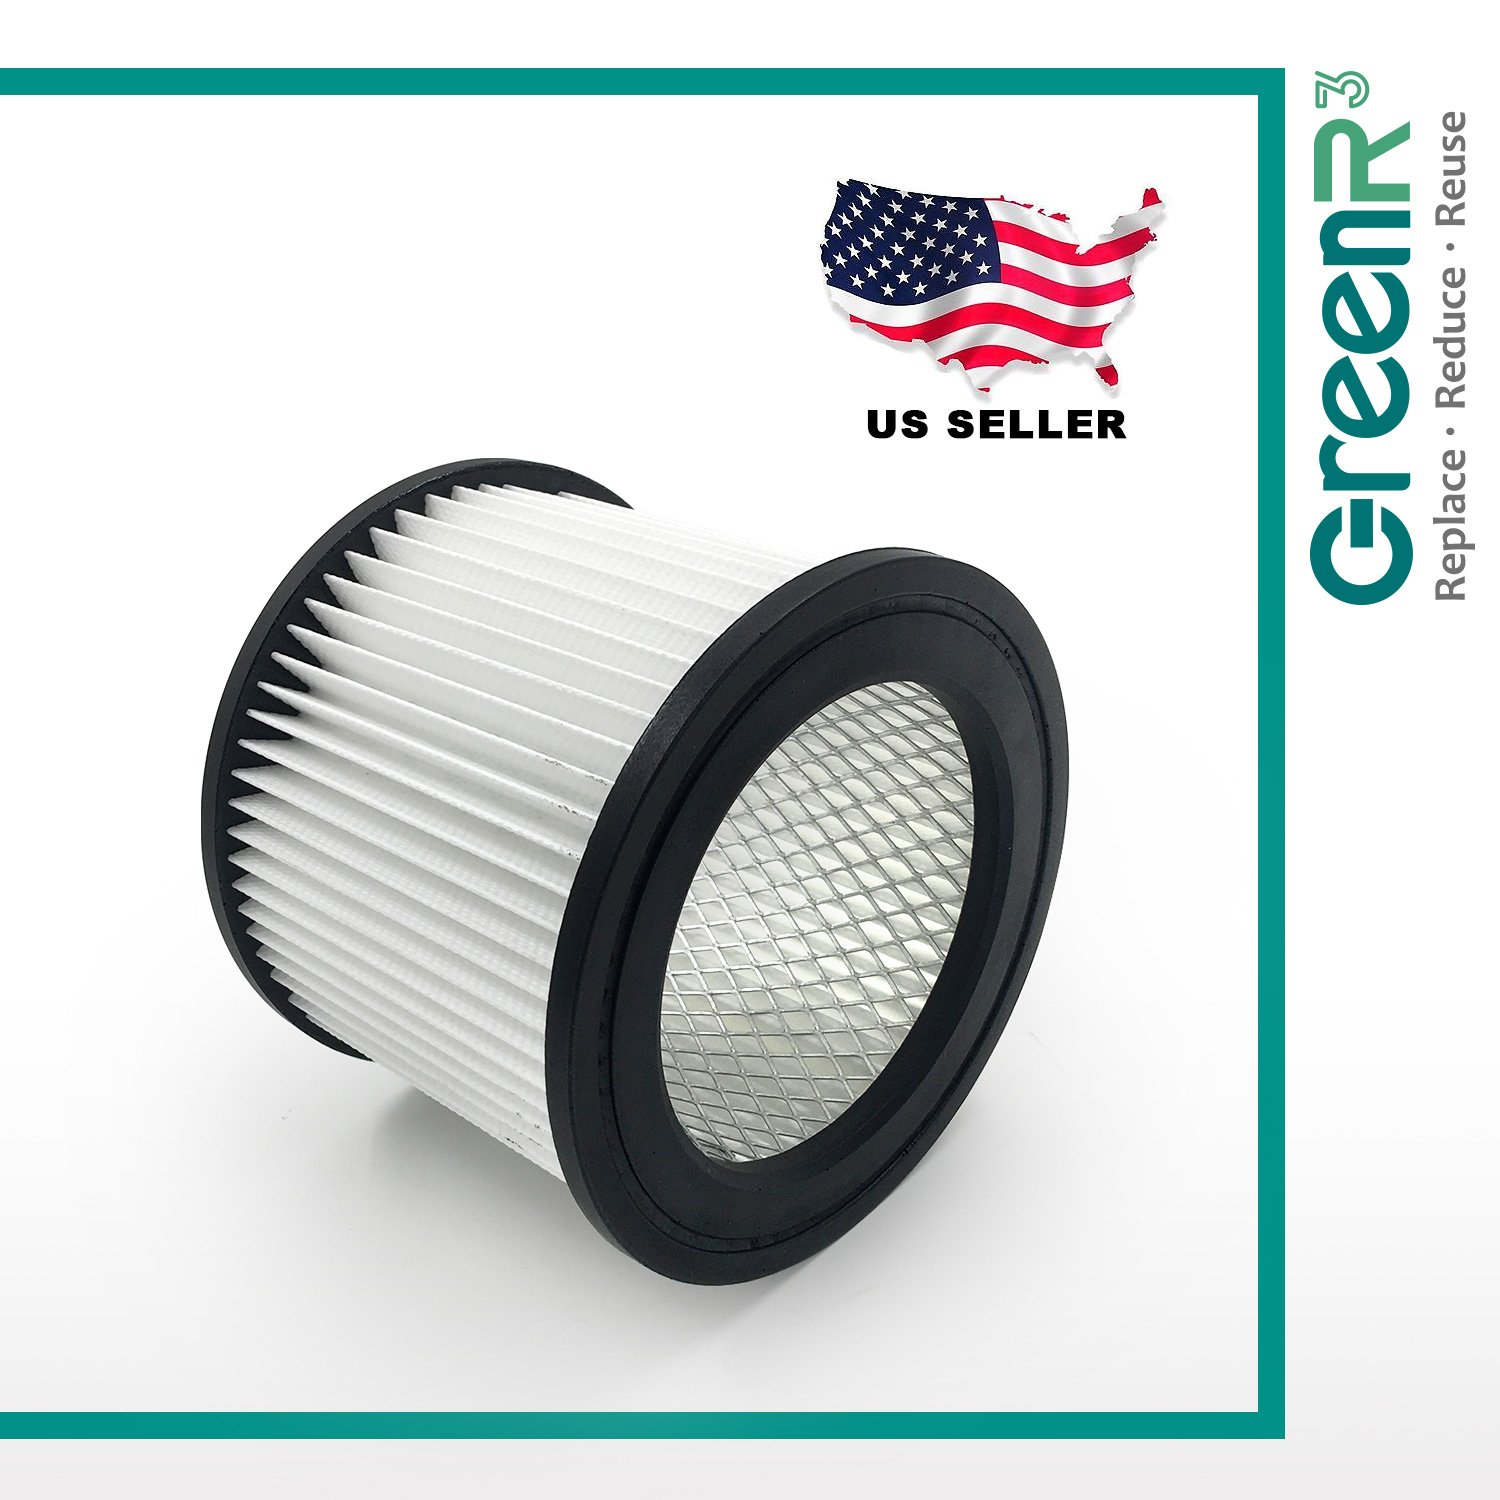 GreenR3 1-Pack Air Filters Vacuum Cleaners For Shop Vac 90398-33 Fits Shop Vac 5 Gallon Contractor Portable Floormaster Plus 9520262 5872462 925022